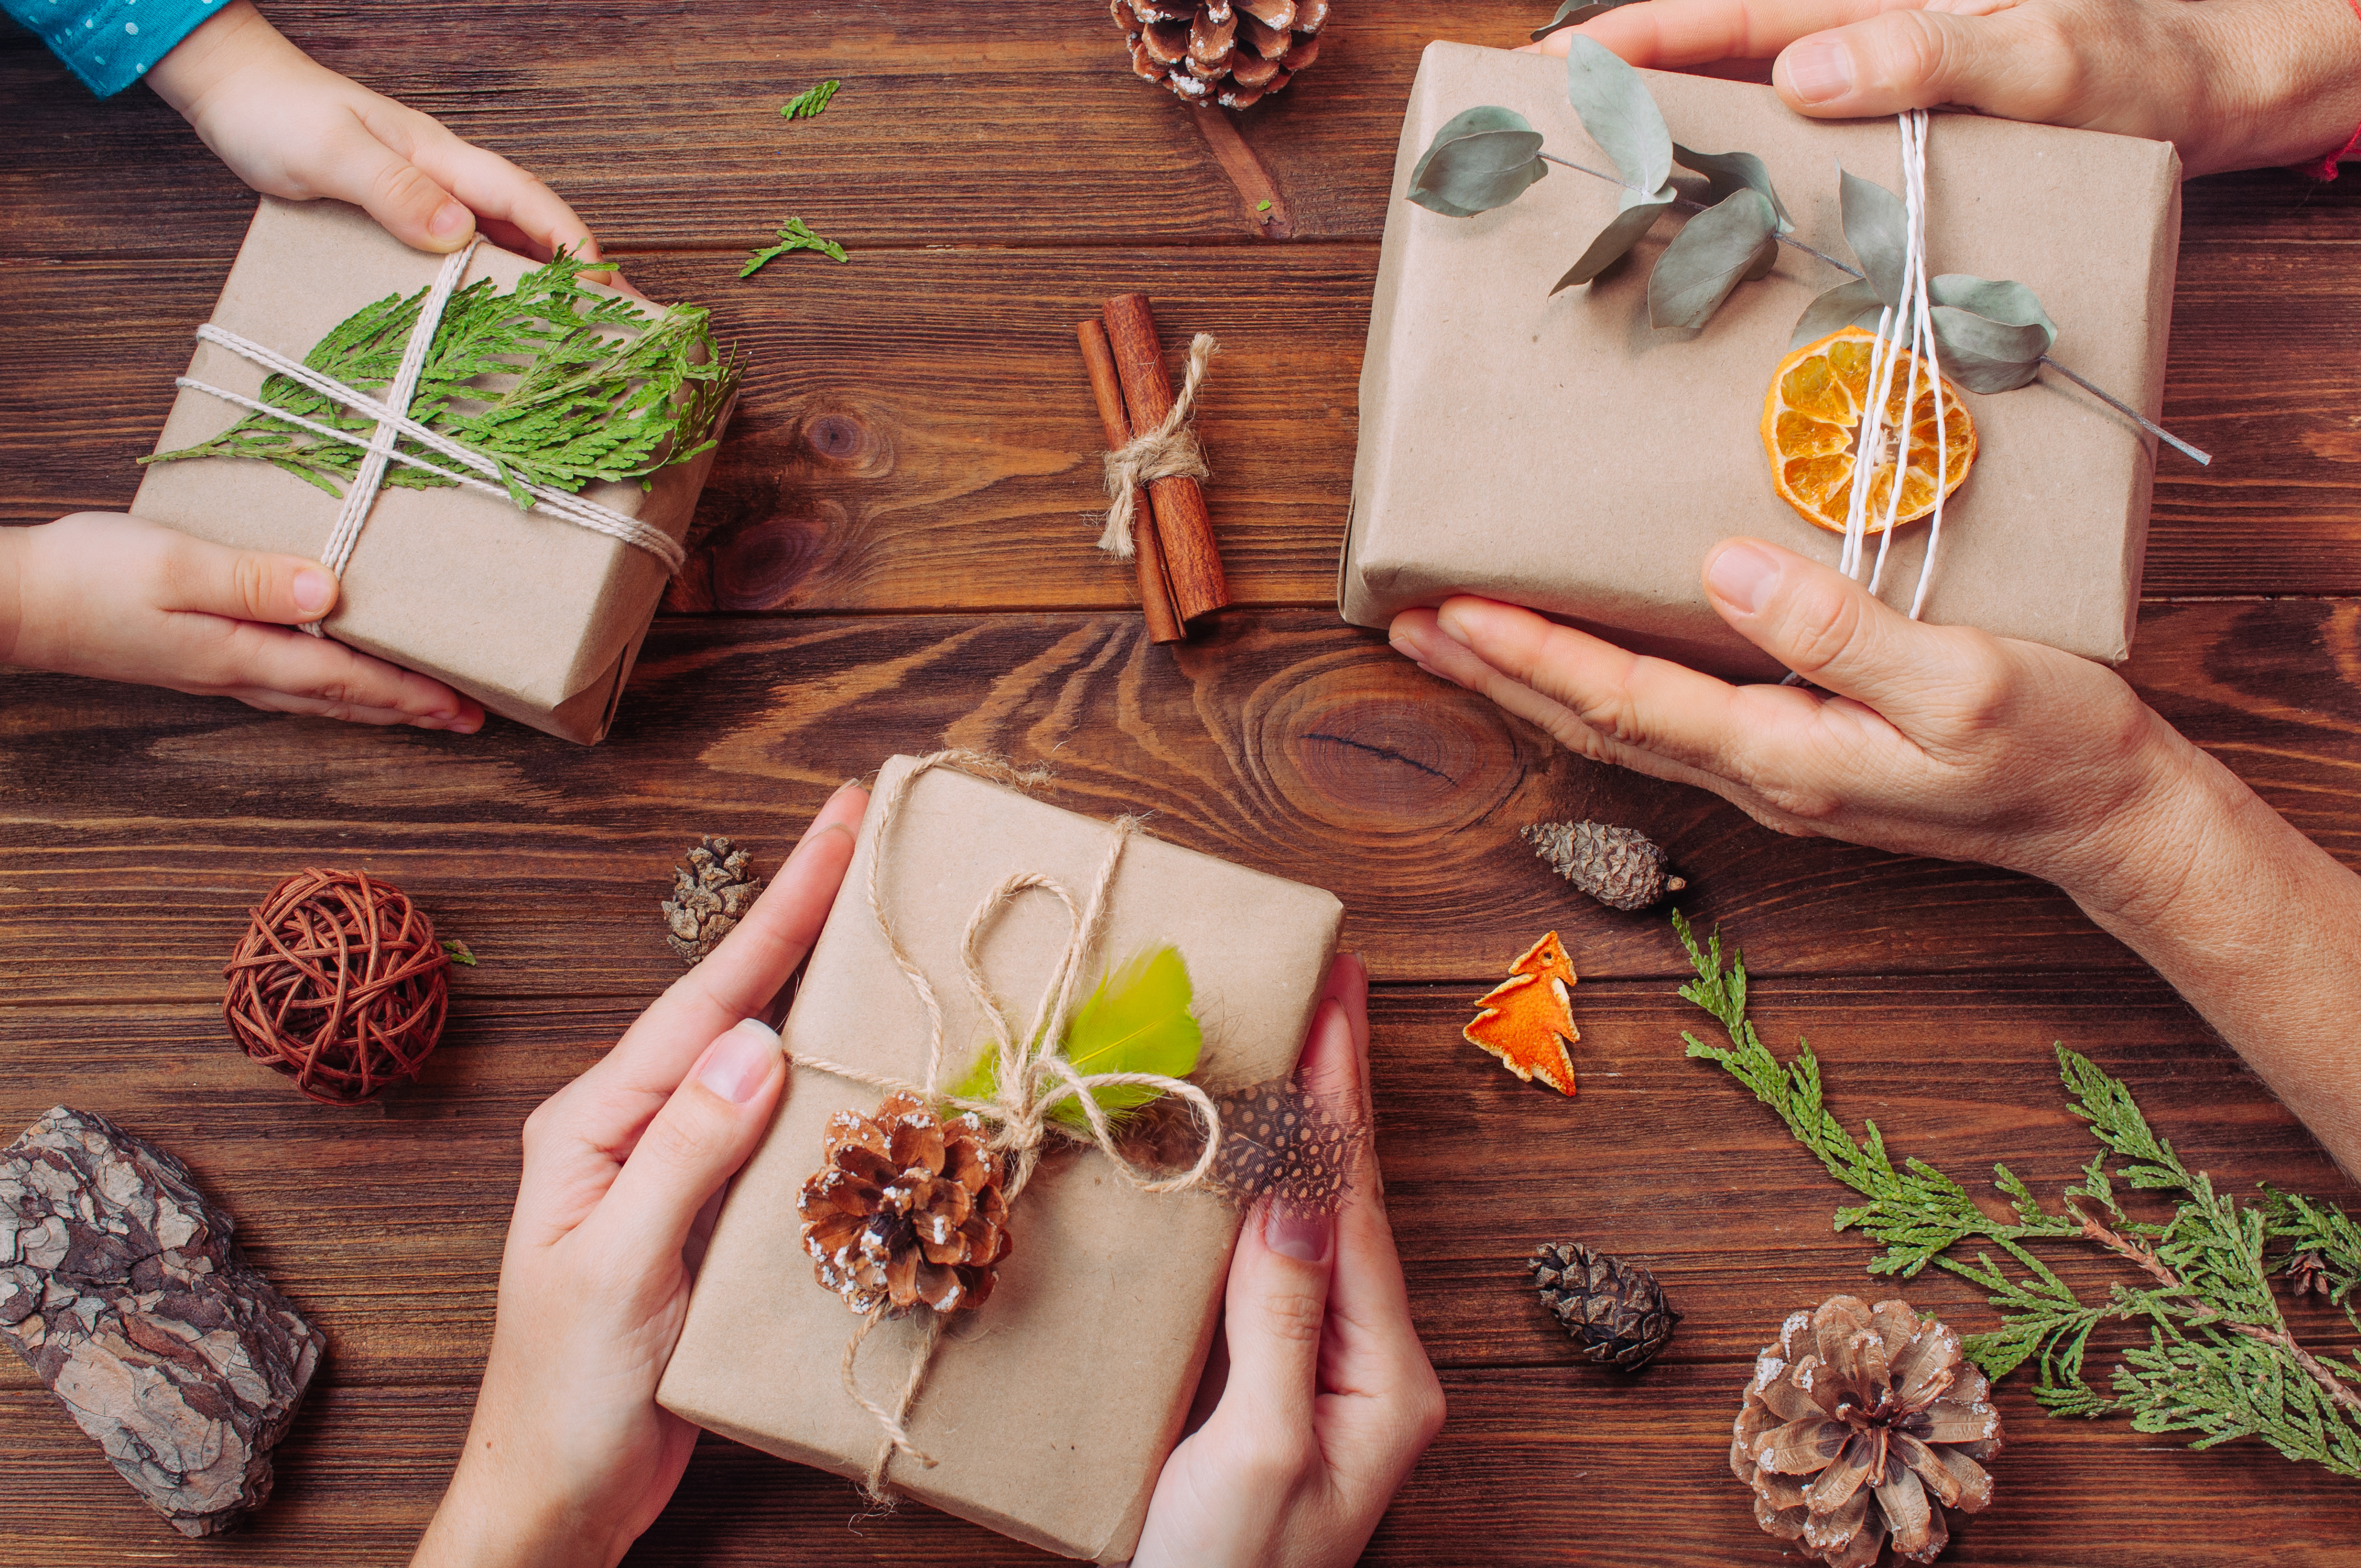 6 Tips for a Sustainable Holiday Season